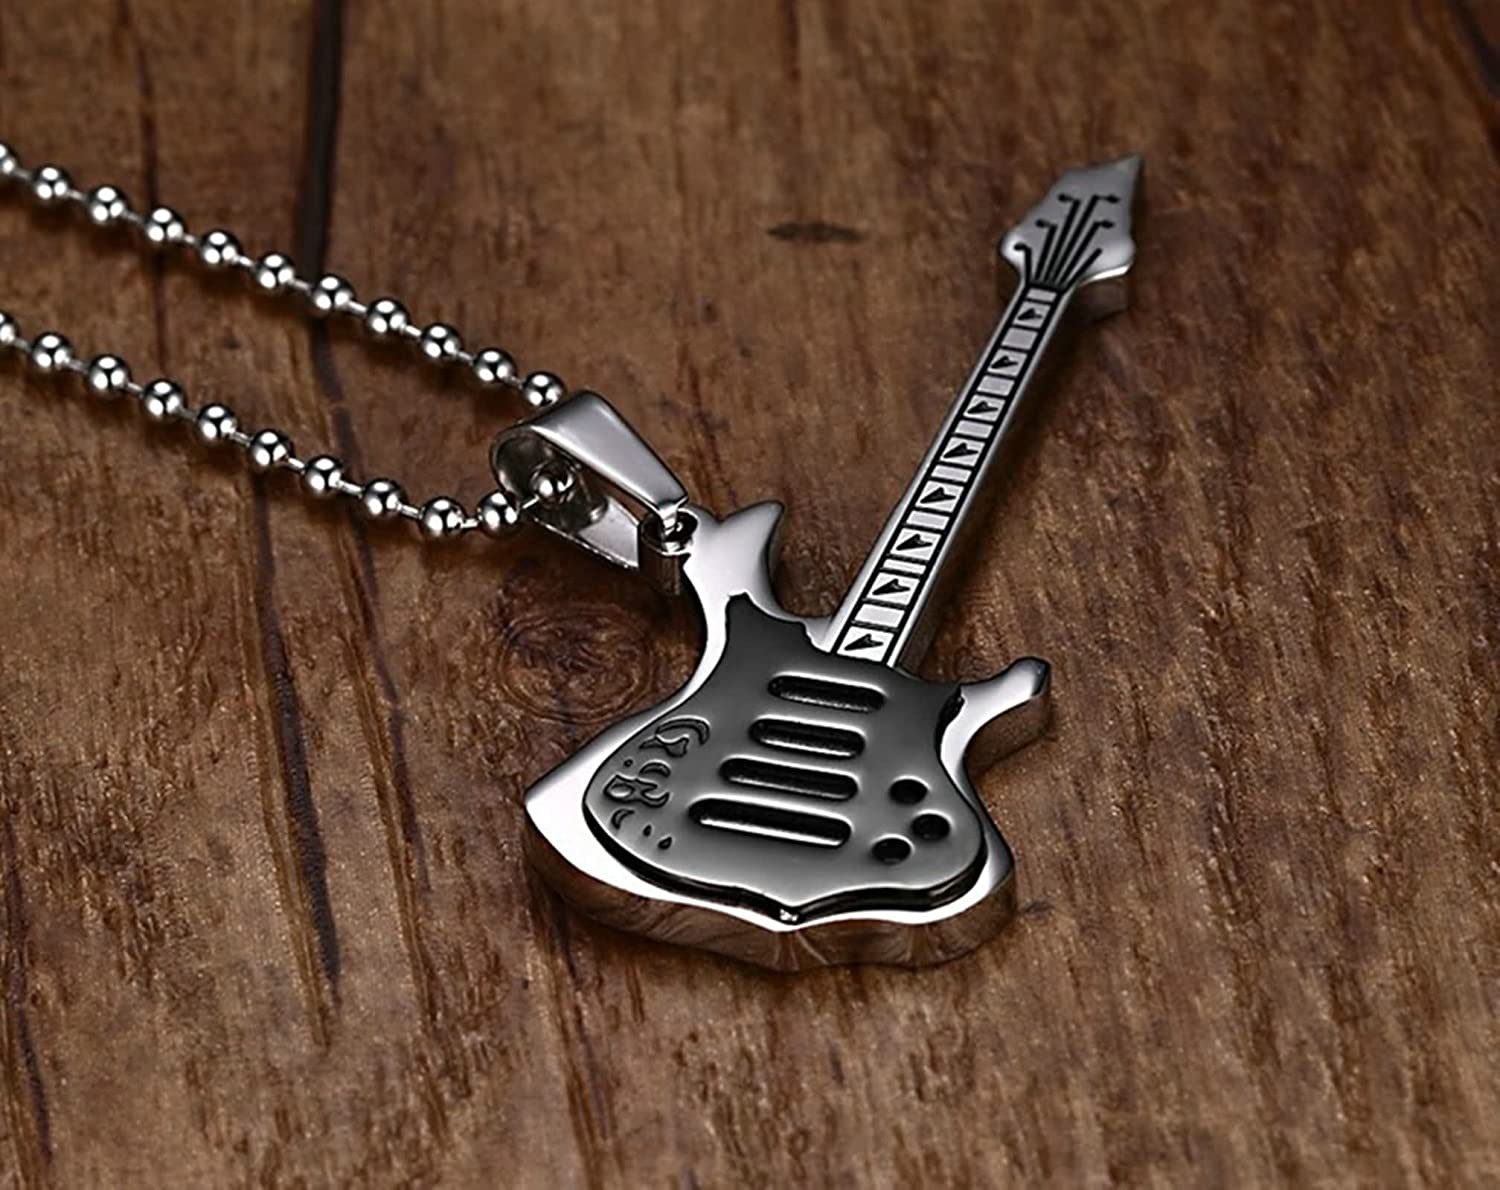 Aooaz Jewelry Stainless Steel Necklace Women Men Chain Guitar Pendant Necklace